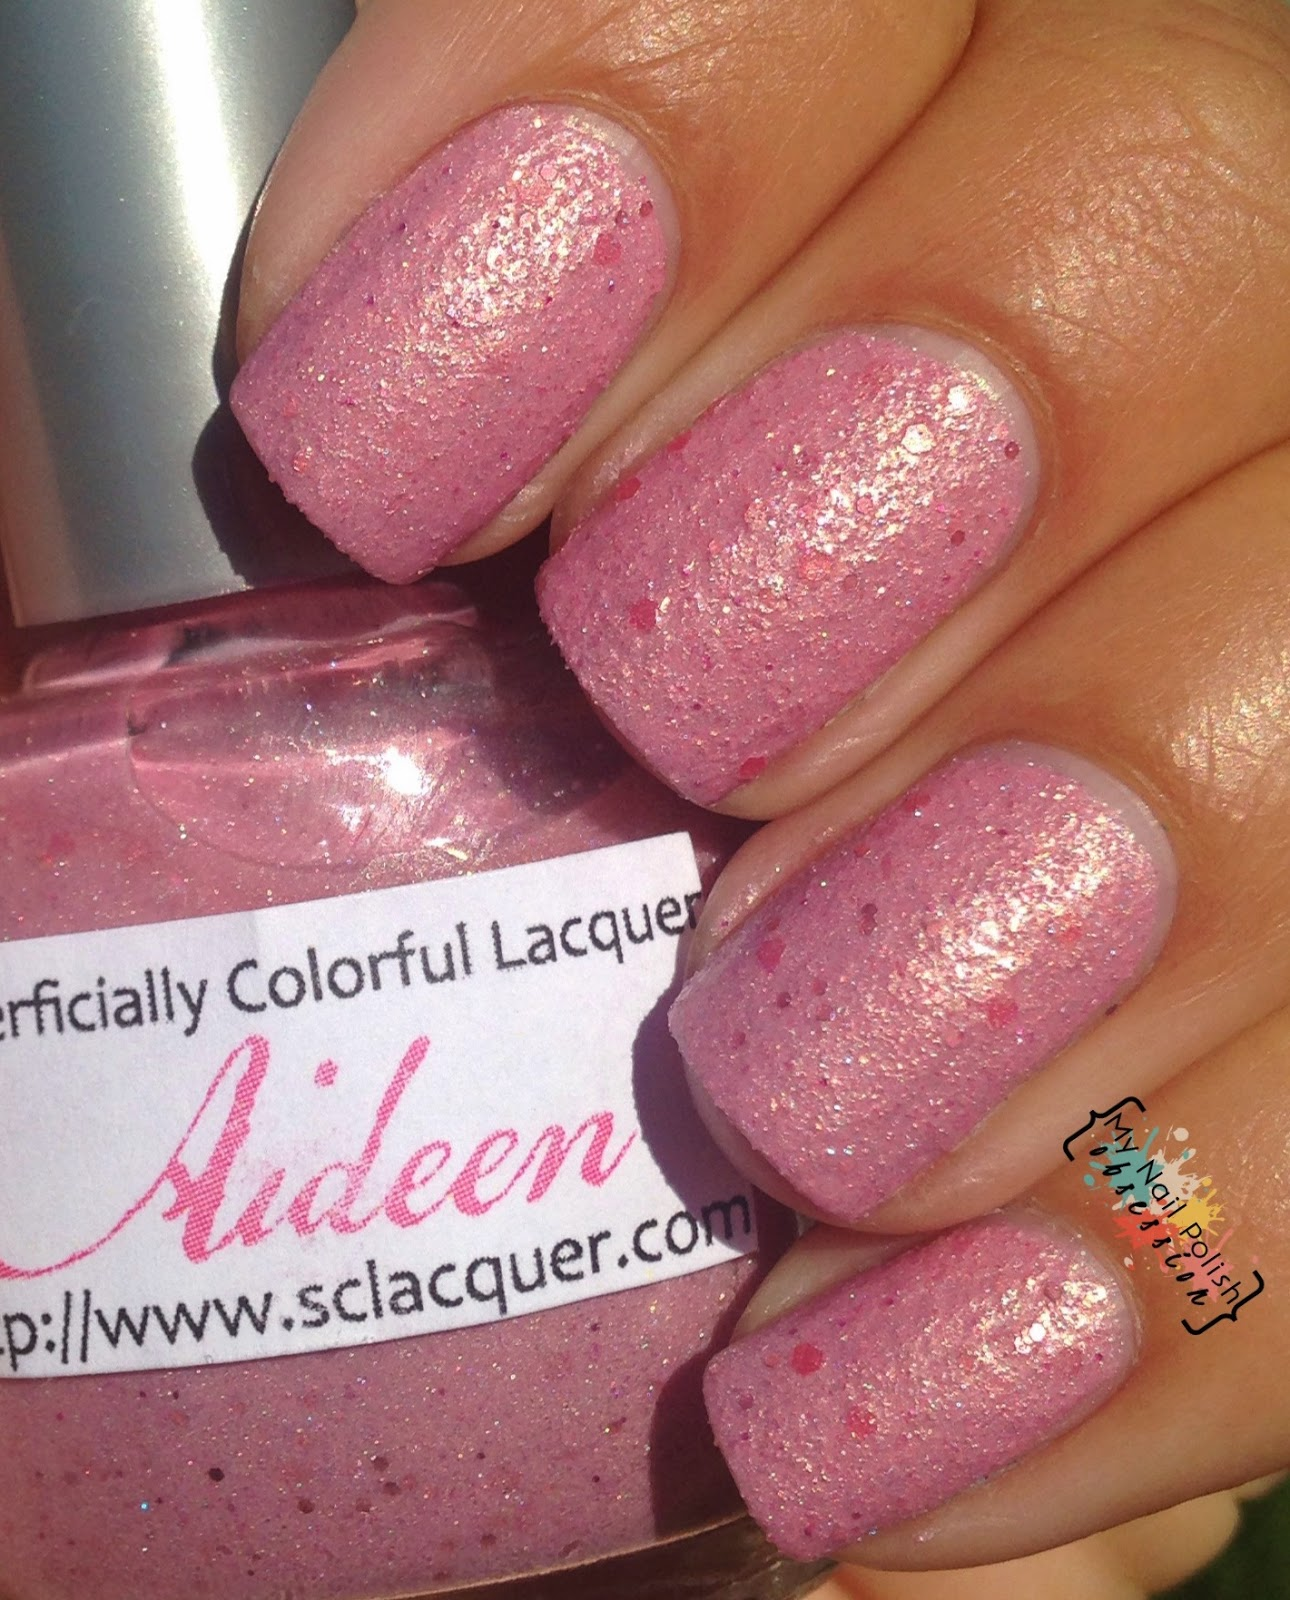 Superficially Colorful Lacquers Aideen